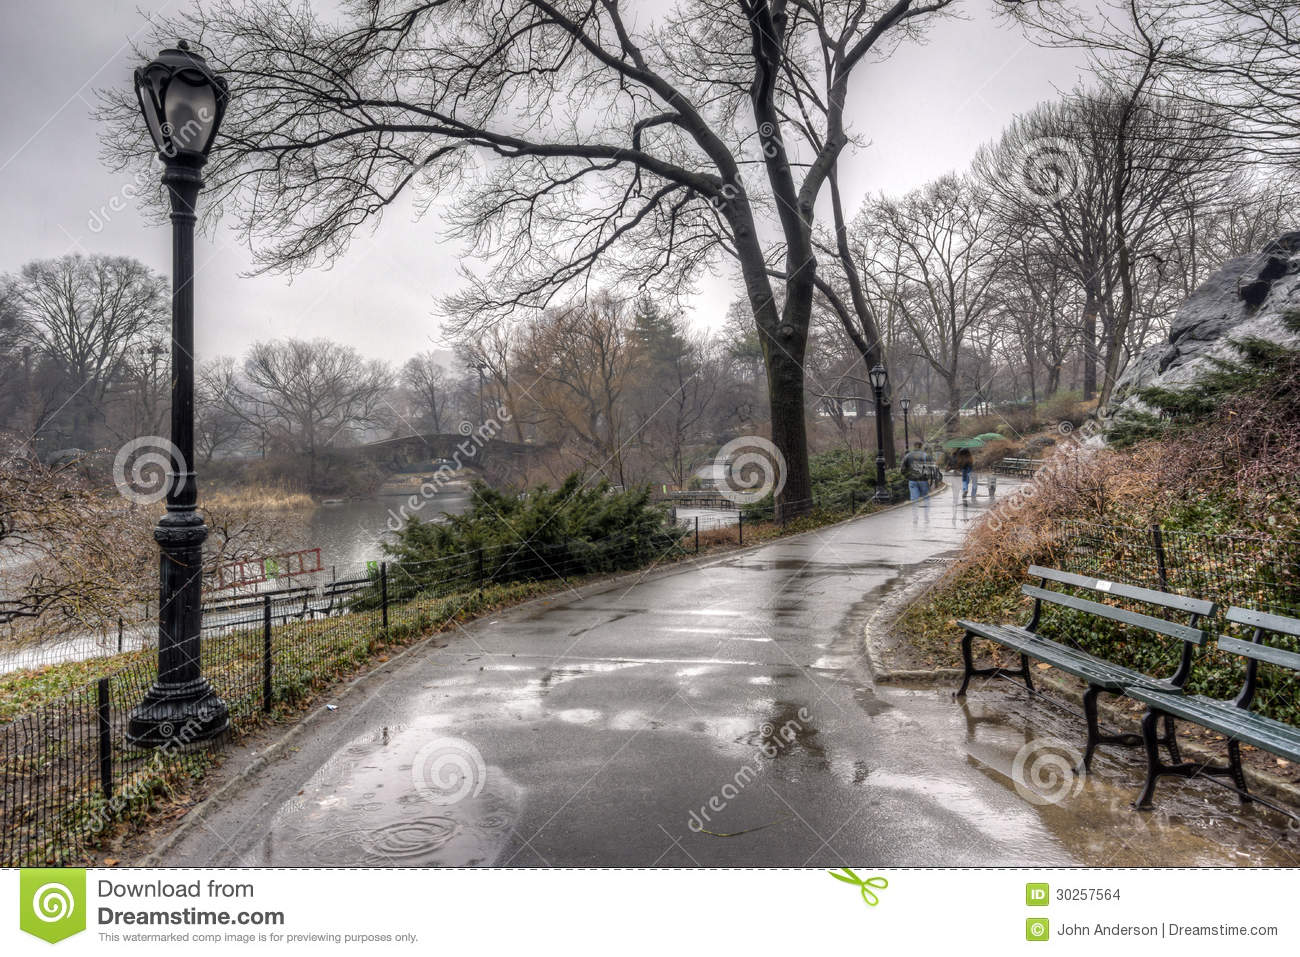 Central Park, New York City After Rain Storm Stock Images - Image: 30257564